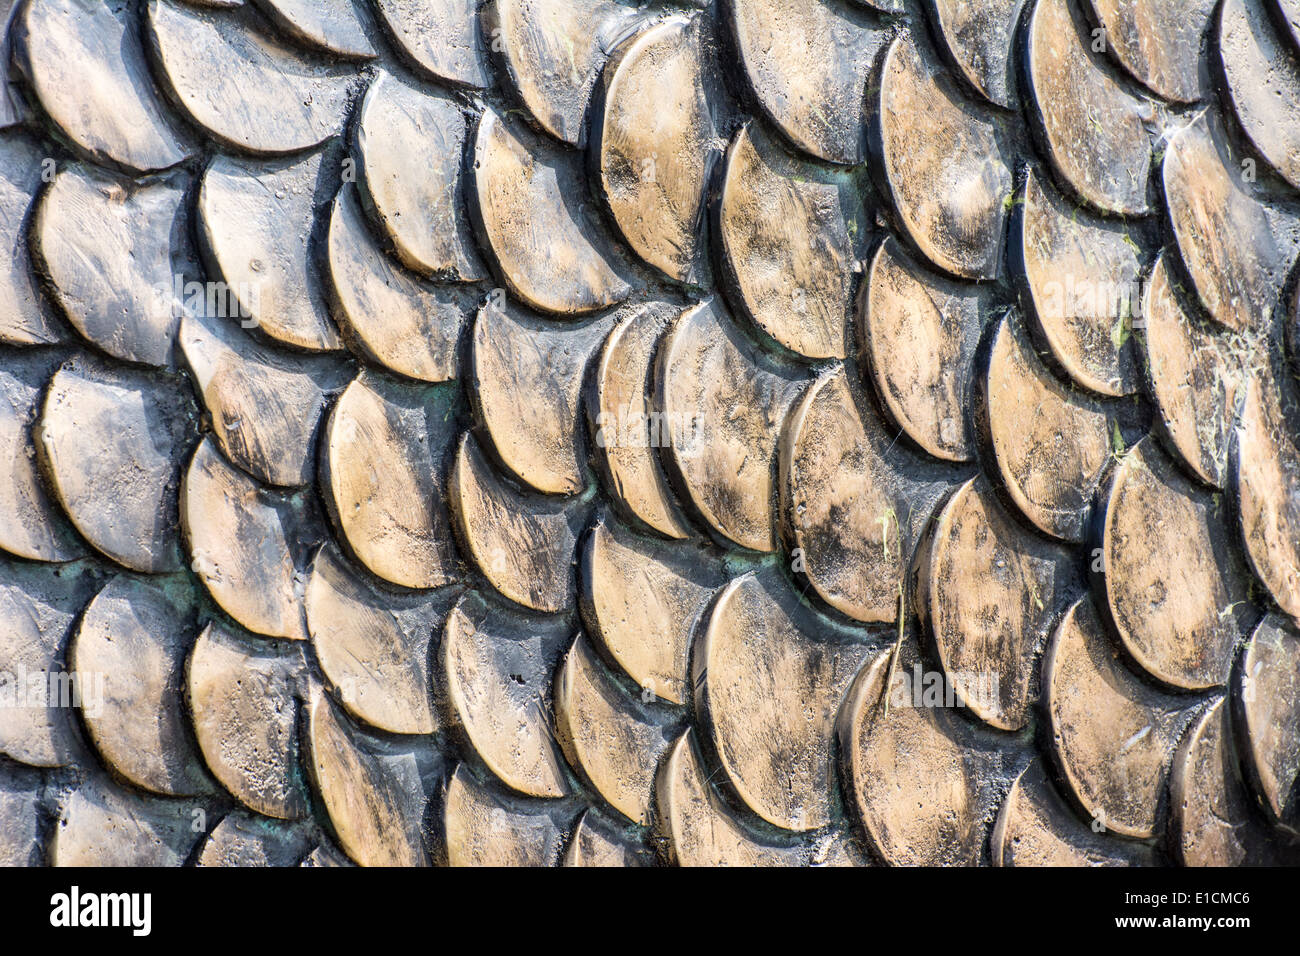 Background of a metallic fish scales pattern - Stock Image